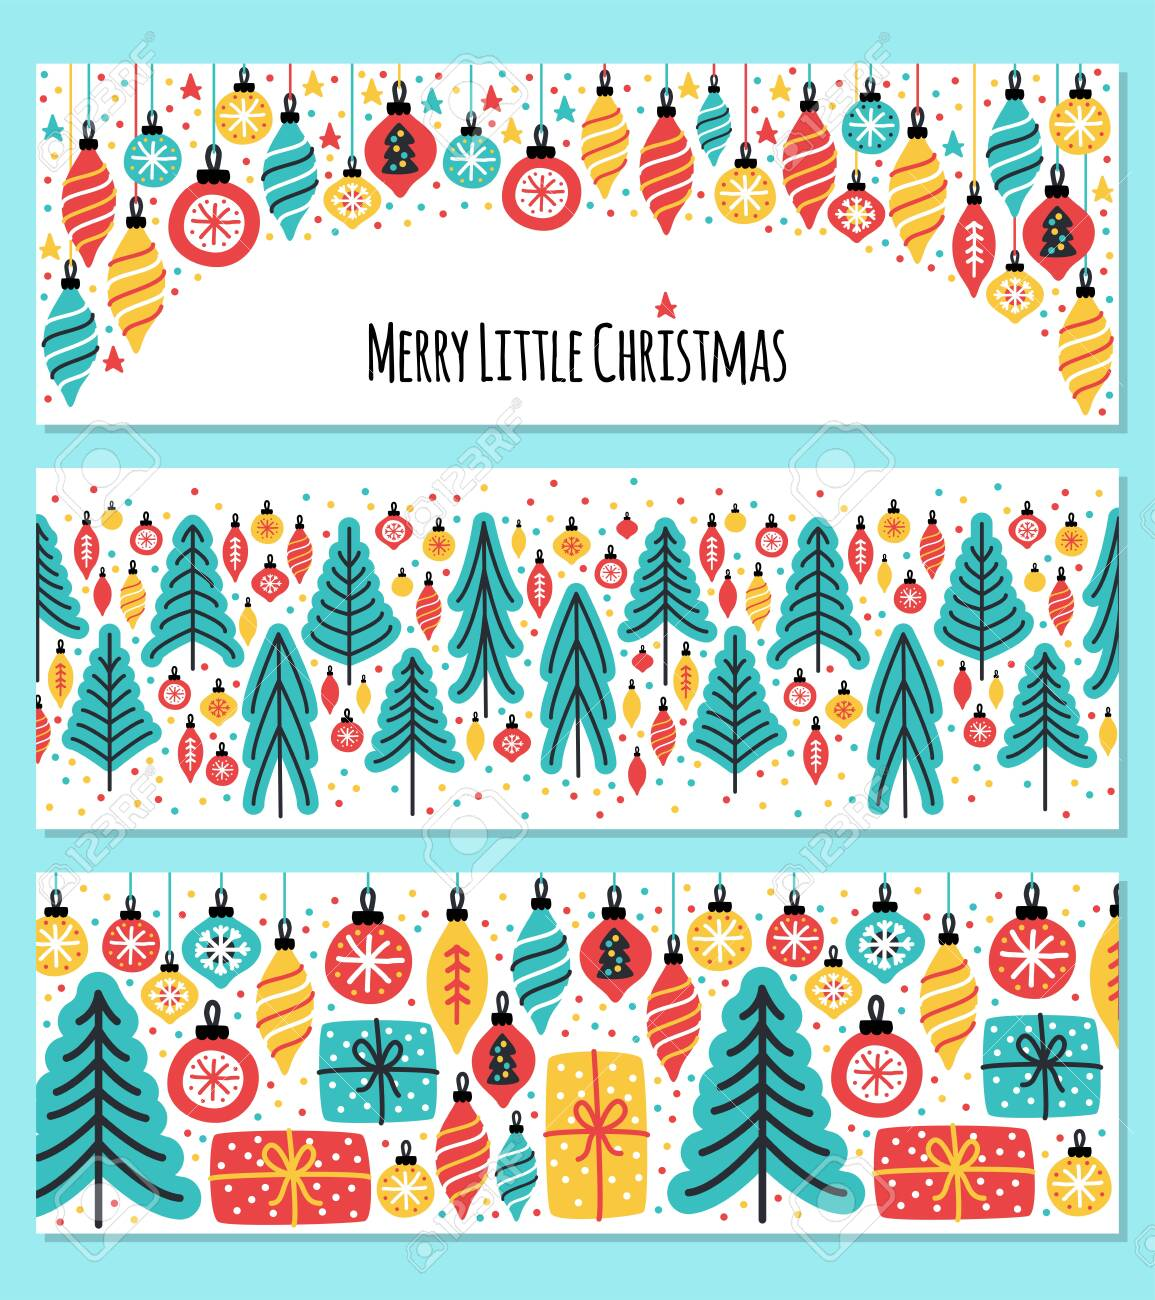 Christmas Backgrounds Cute.Cute Set Of Merry Little Christmas Horizontal Banner Backgrounds